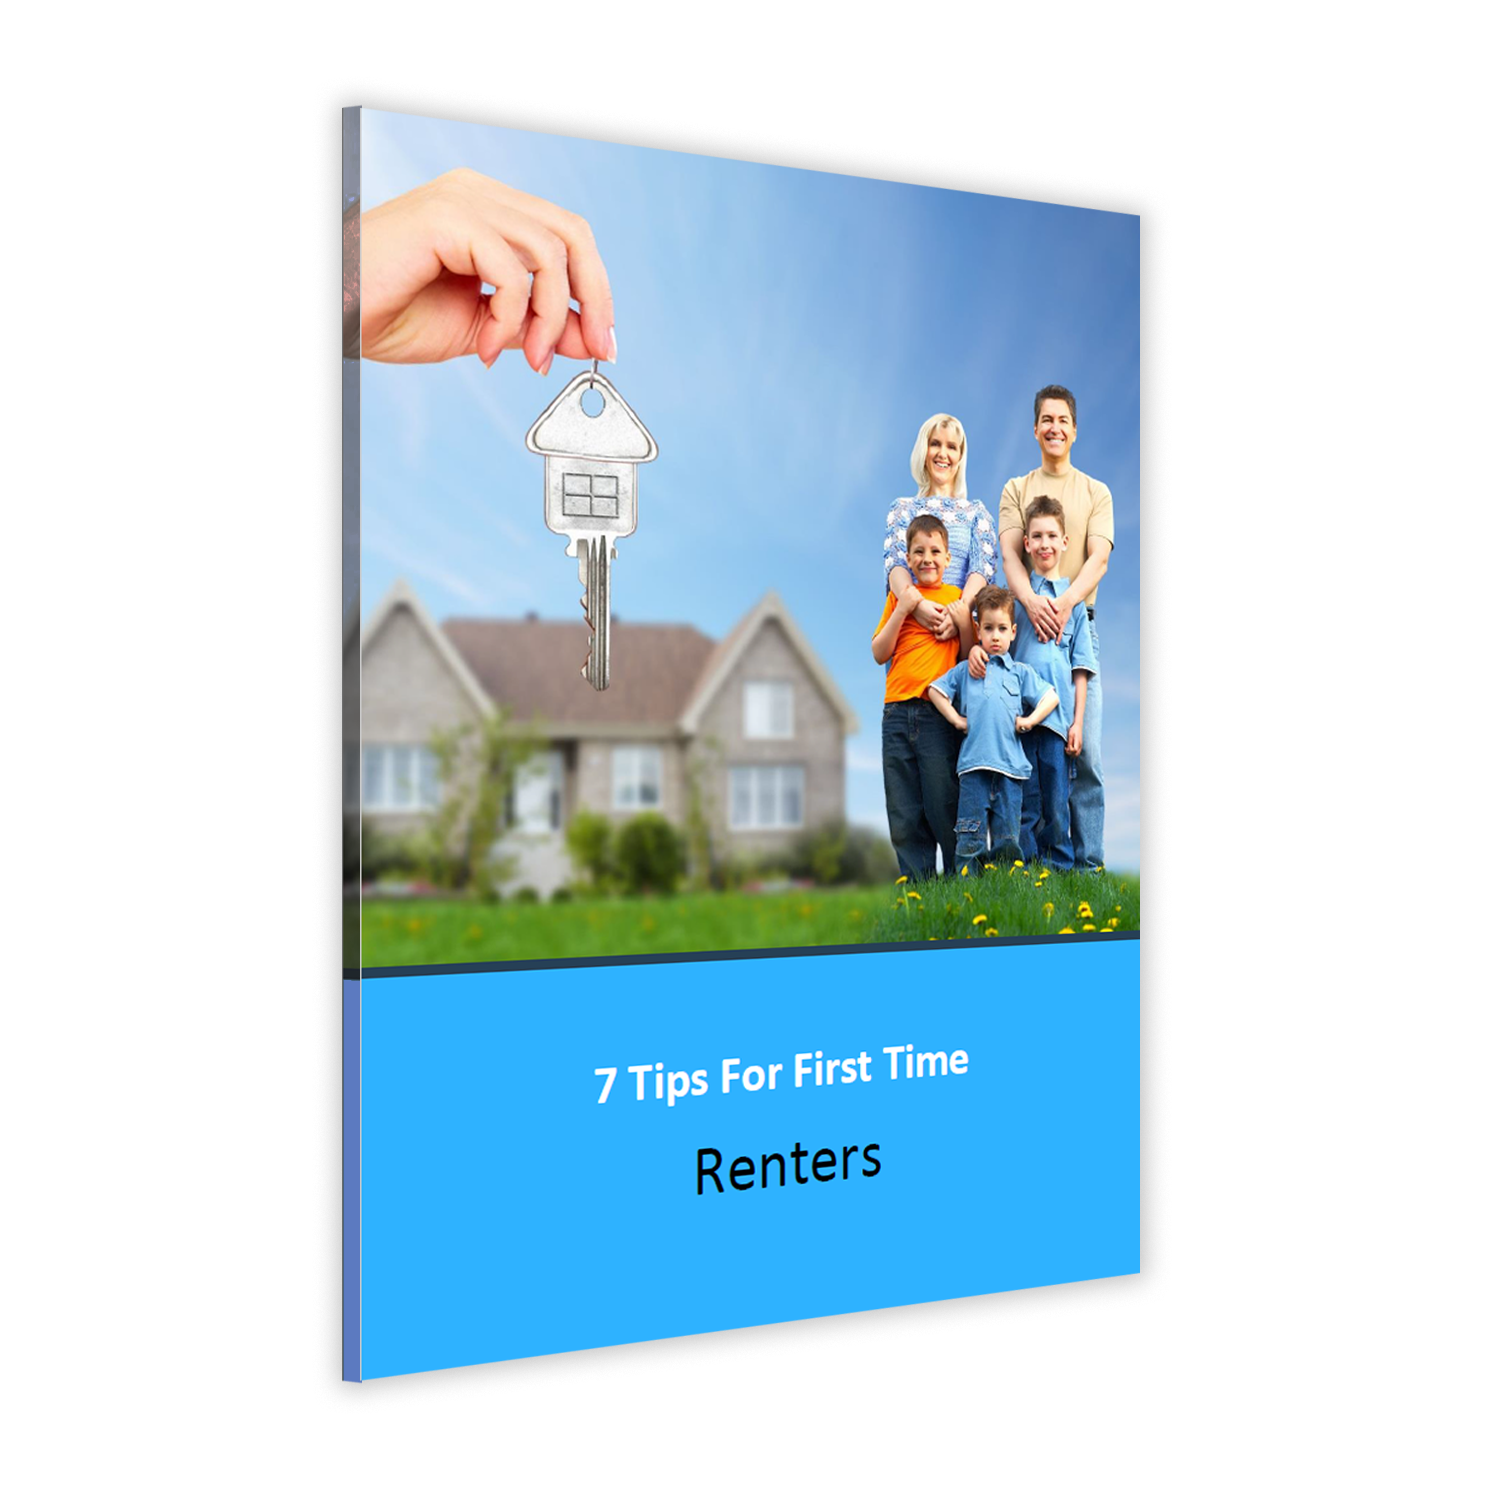 7 Tips for First Time Renters